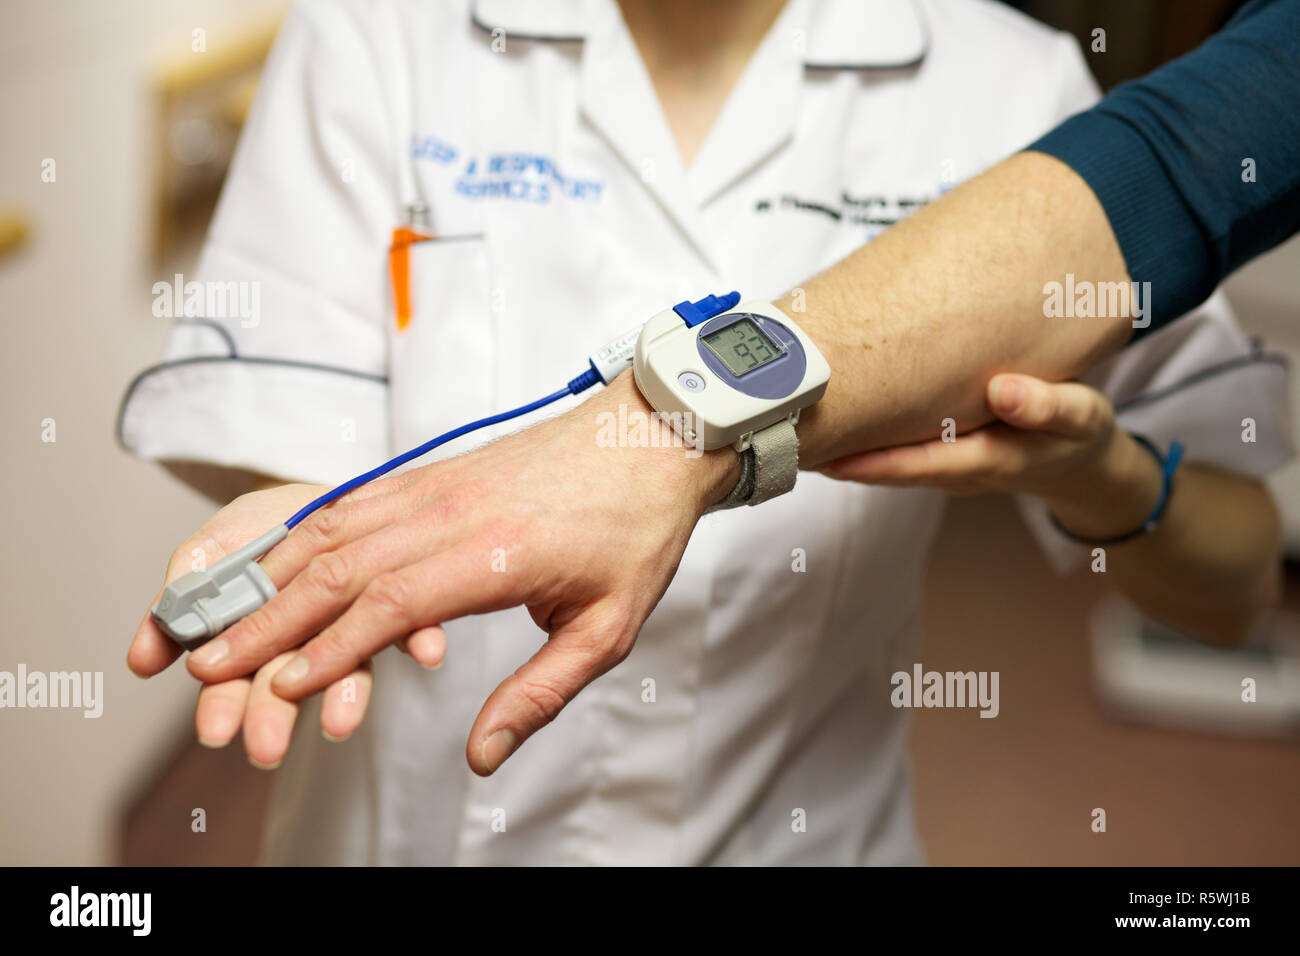 A nurse uses a pulse oximeter to monitor a patients oxygen saturation - Stock Image